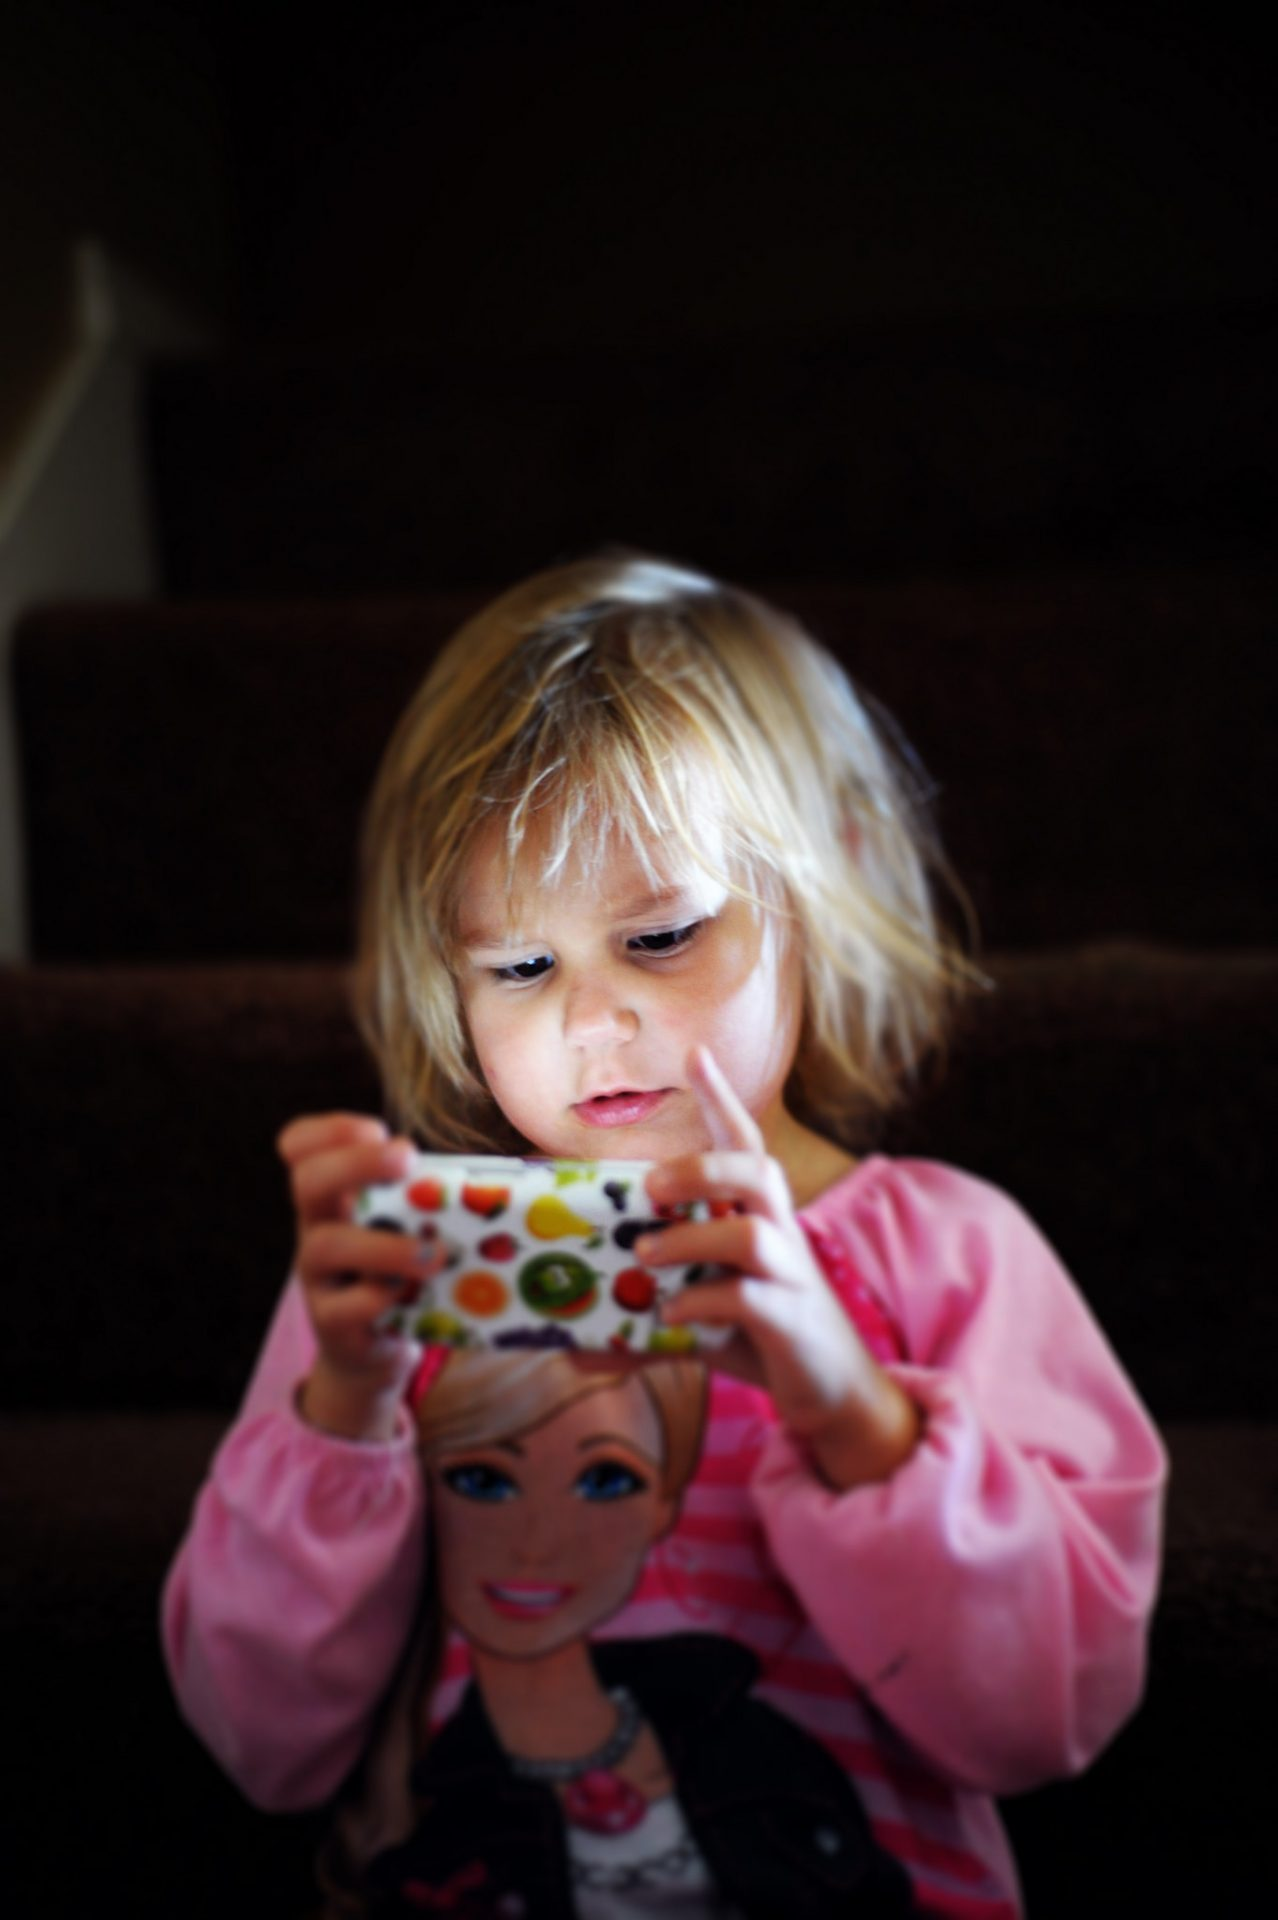 little girl dressed in pink holding a smartphone in hand, starring at the screen. Lights to t